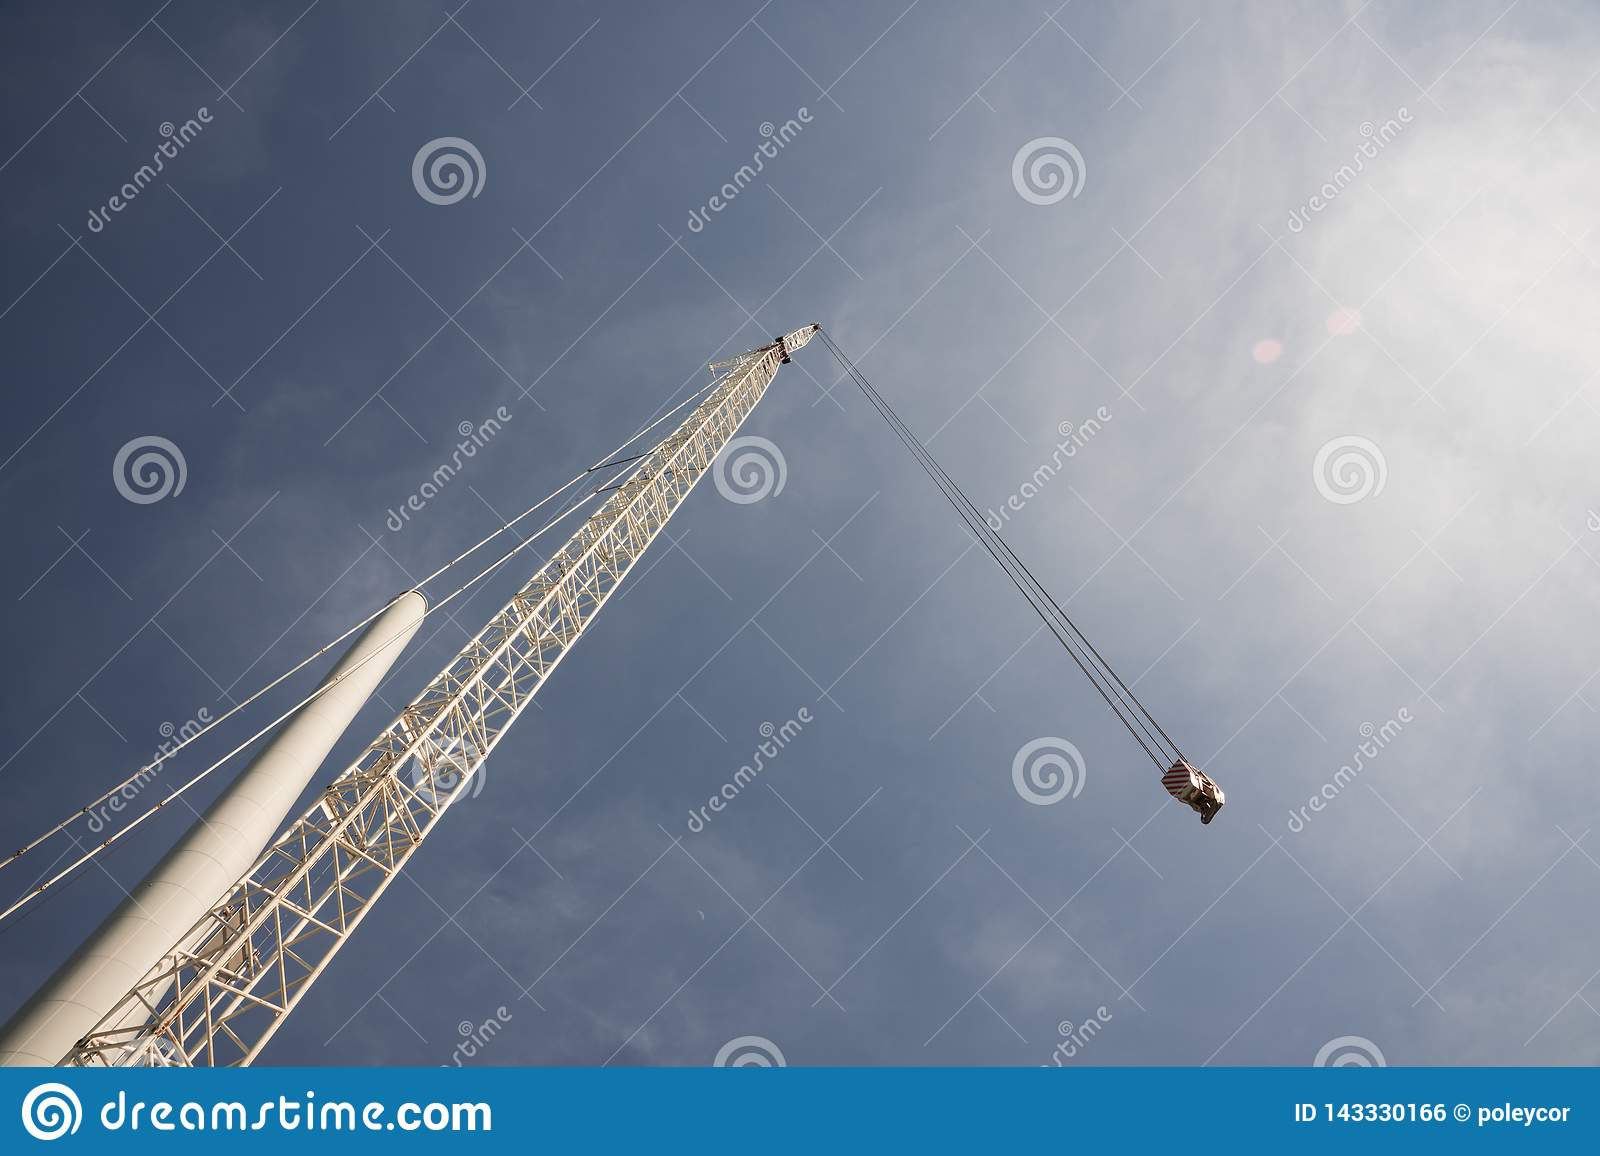 Crane and pole of windmill, against blue sunny sky